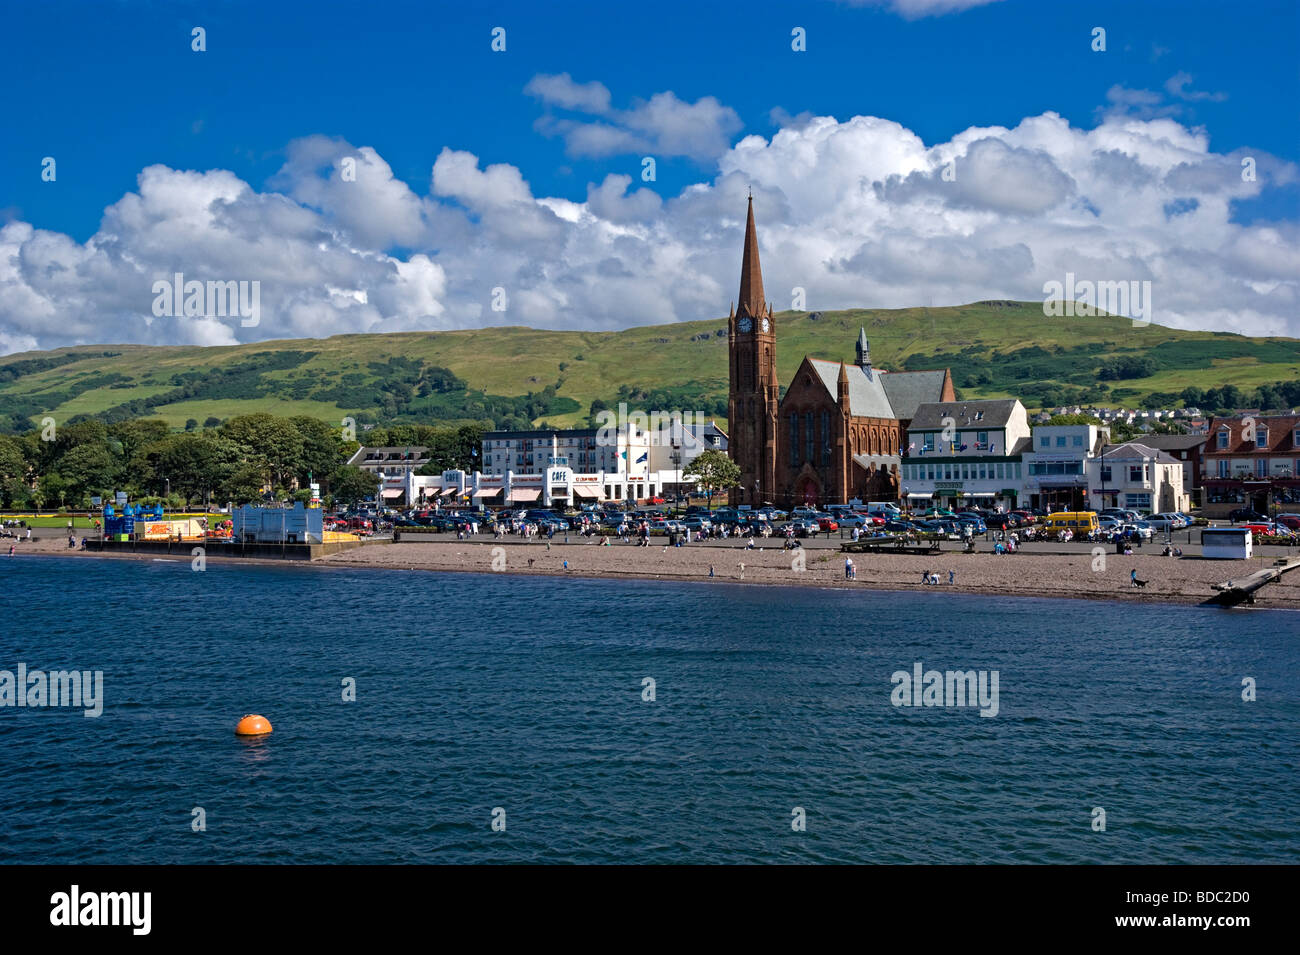 Sea front view of Largs in Ayrshire western Scotland - Stock Image